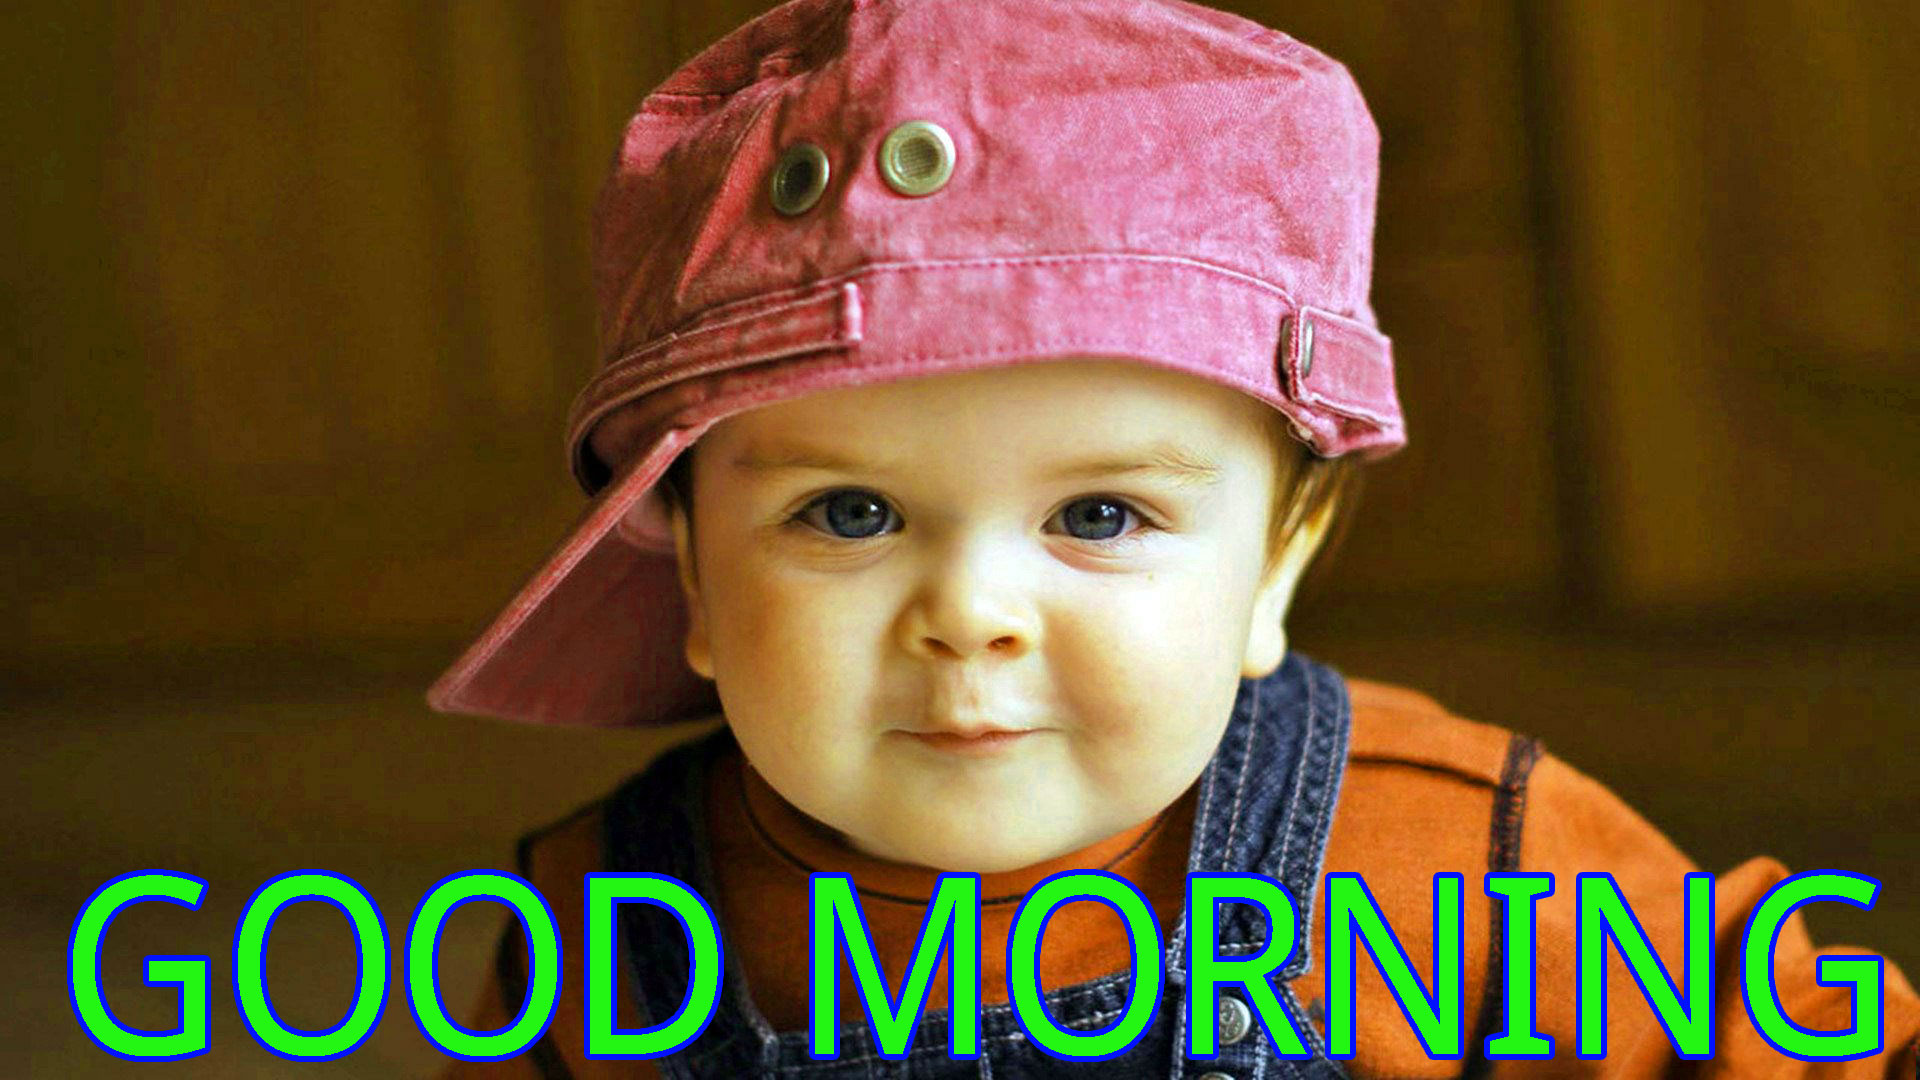 Good Morning Indian Cute baby Girls Boys images Pictures Pics HD For Whatsapp